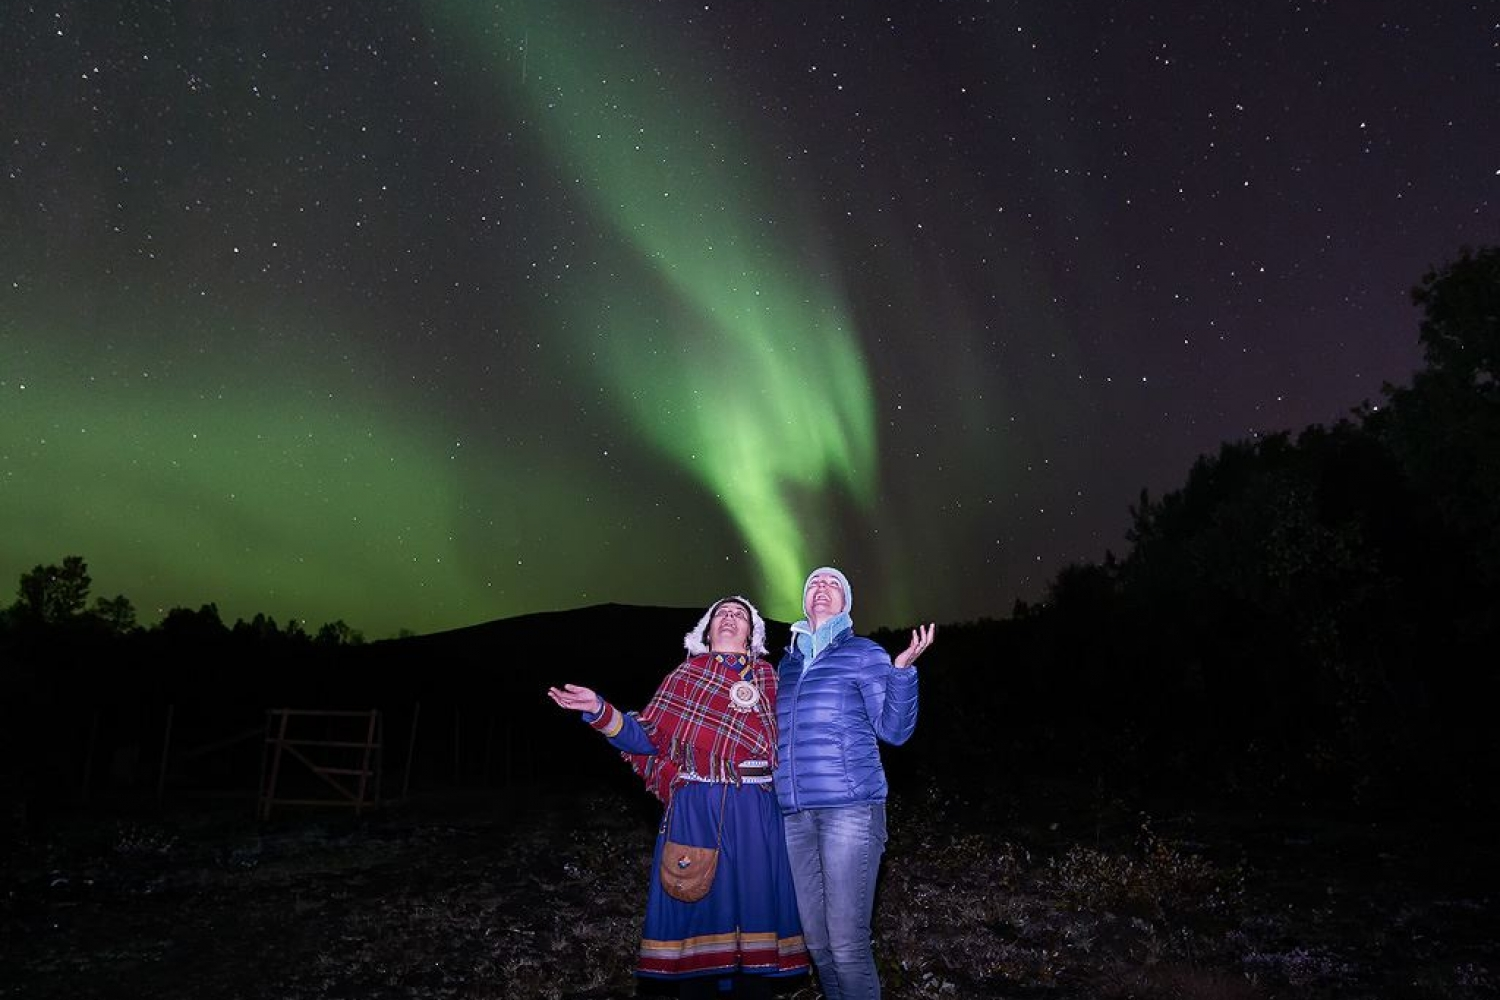 Sami lady and guest admiring the Northern lights together